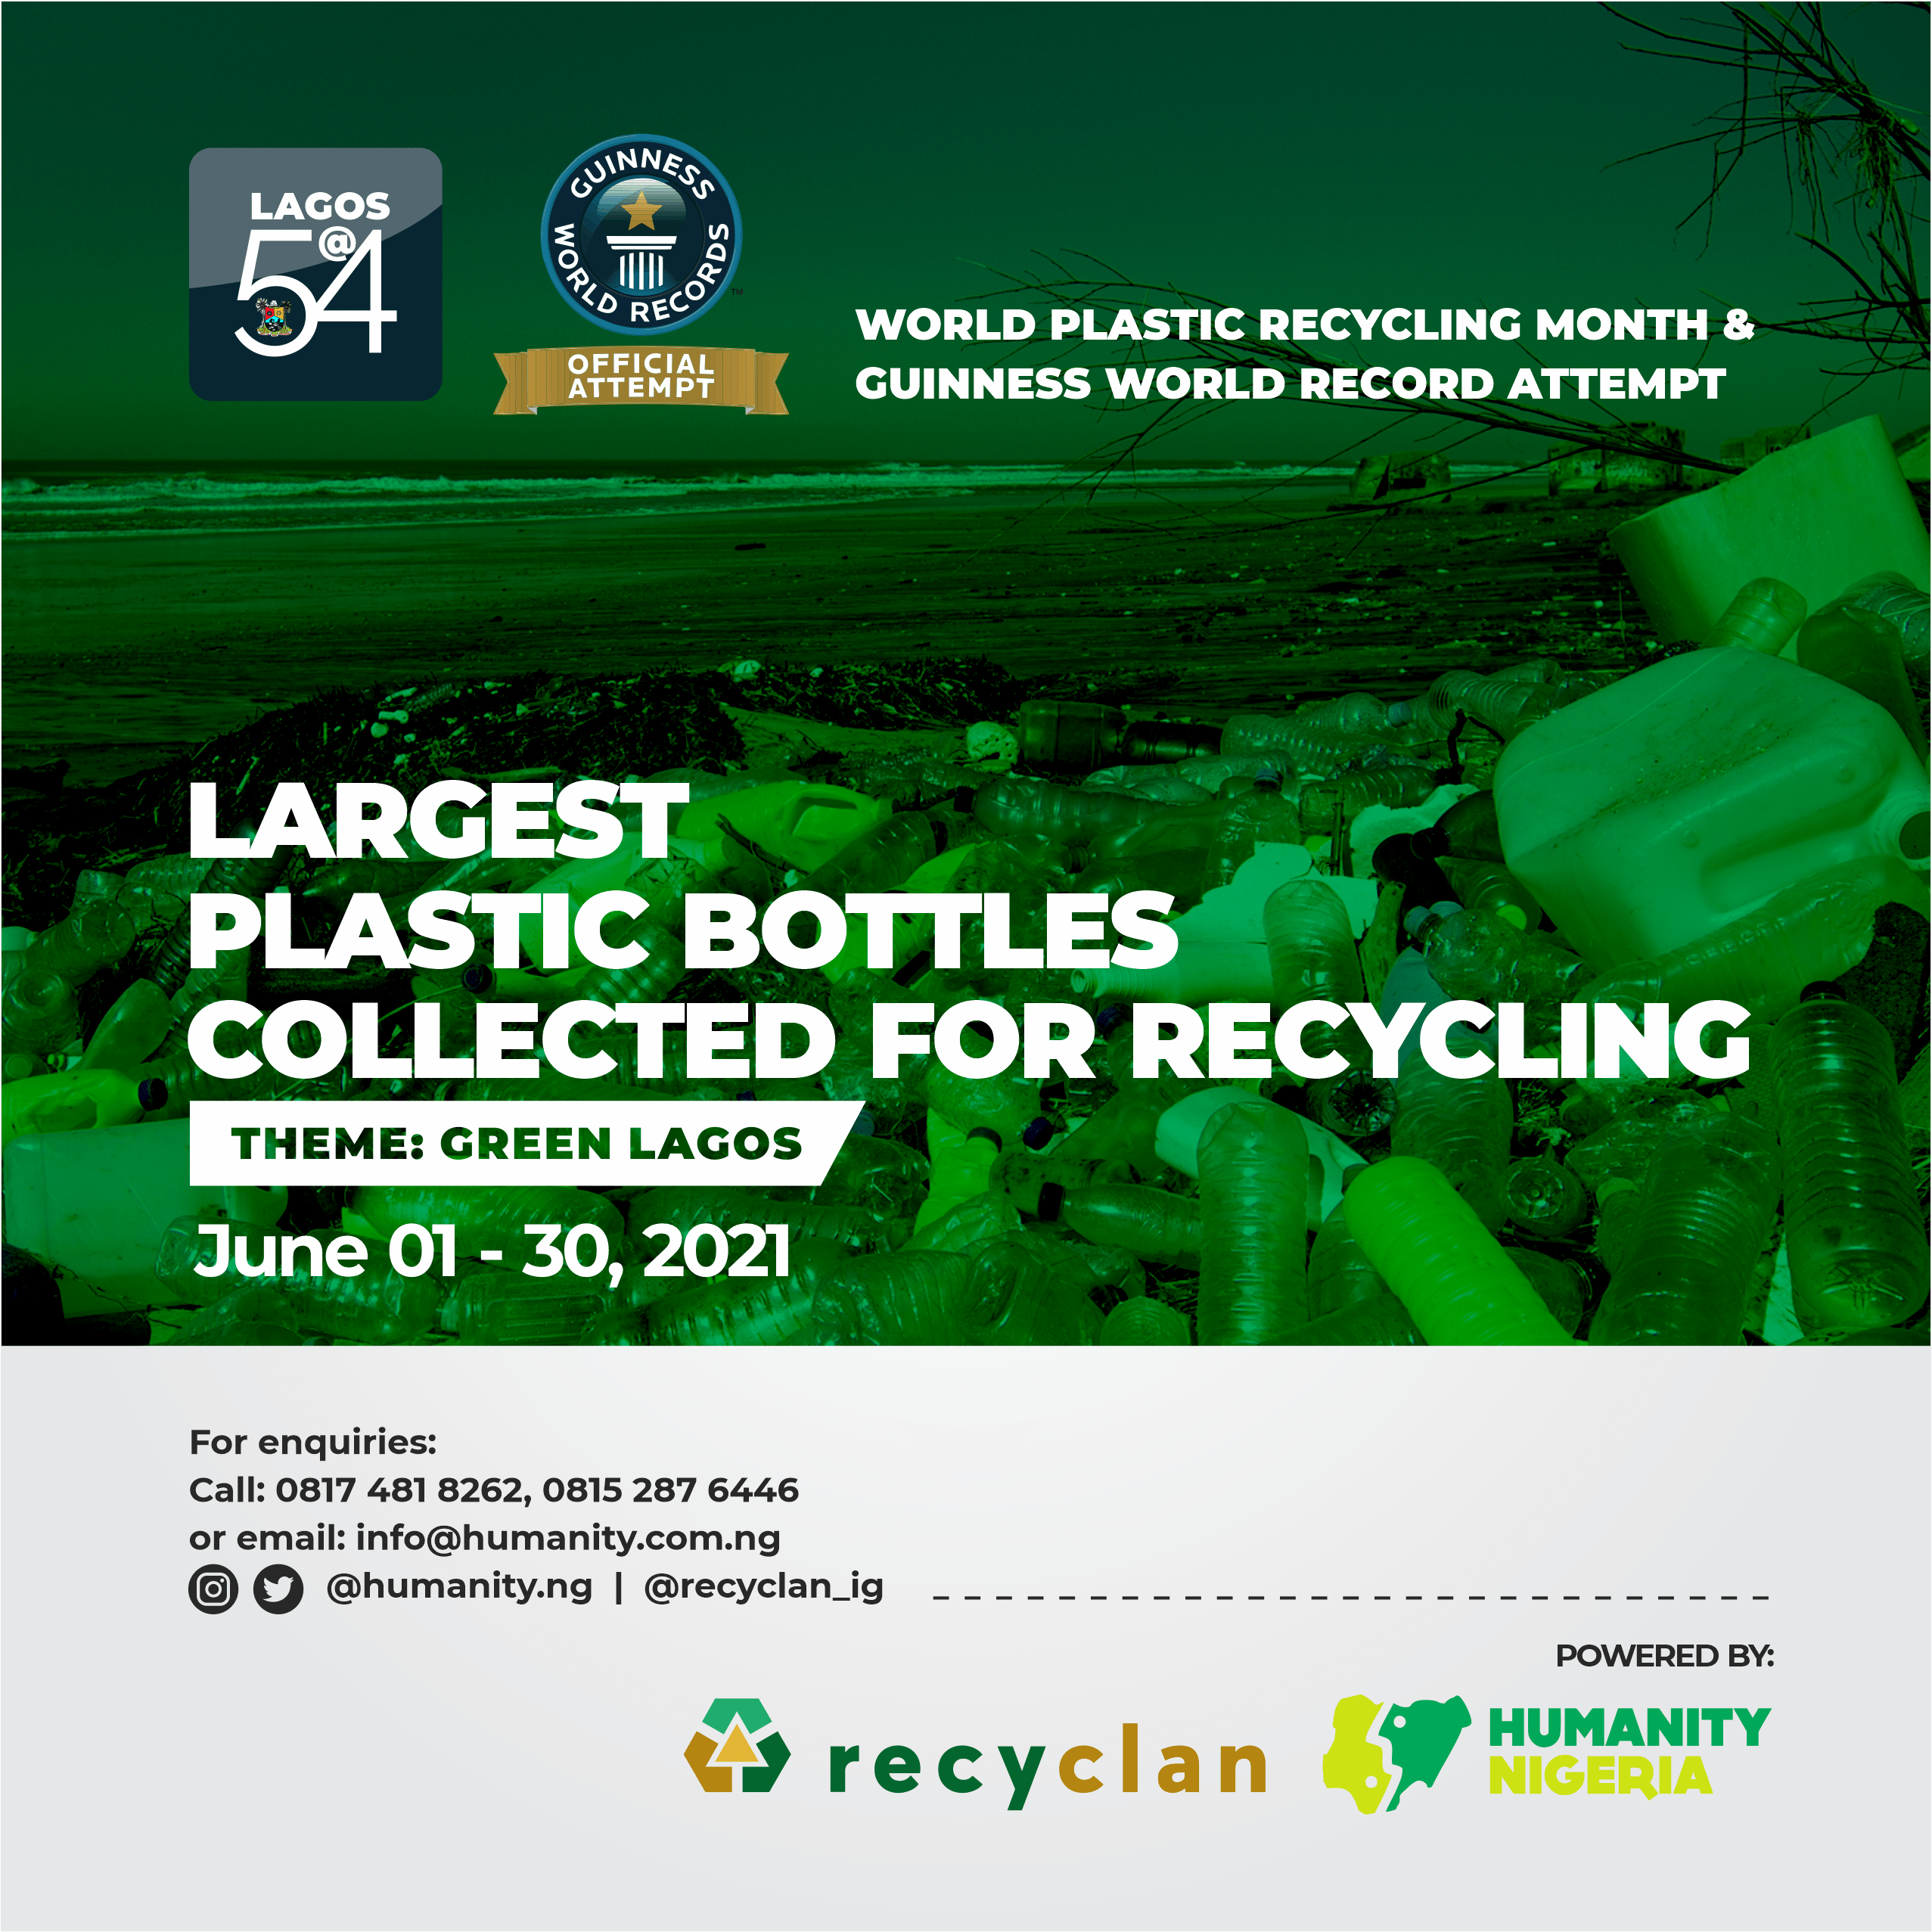 RECYCLAN GLOBAL SERVICES LIMITED AND HUMANITY NIGERIA move to recover 400 tons of Plastic waste from the natural environment